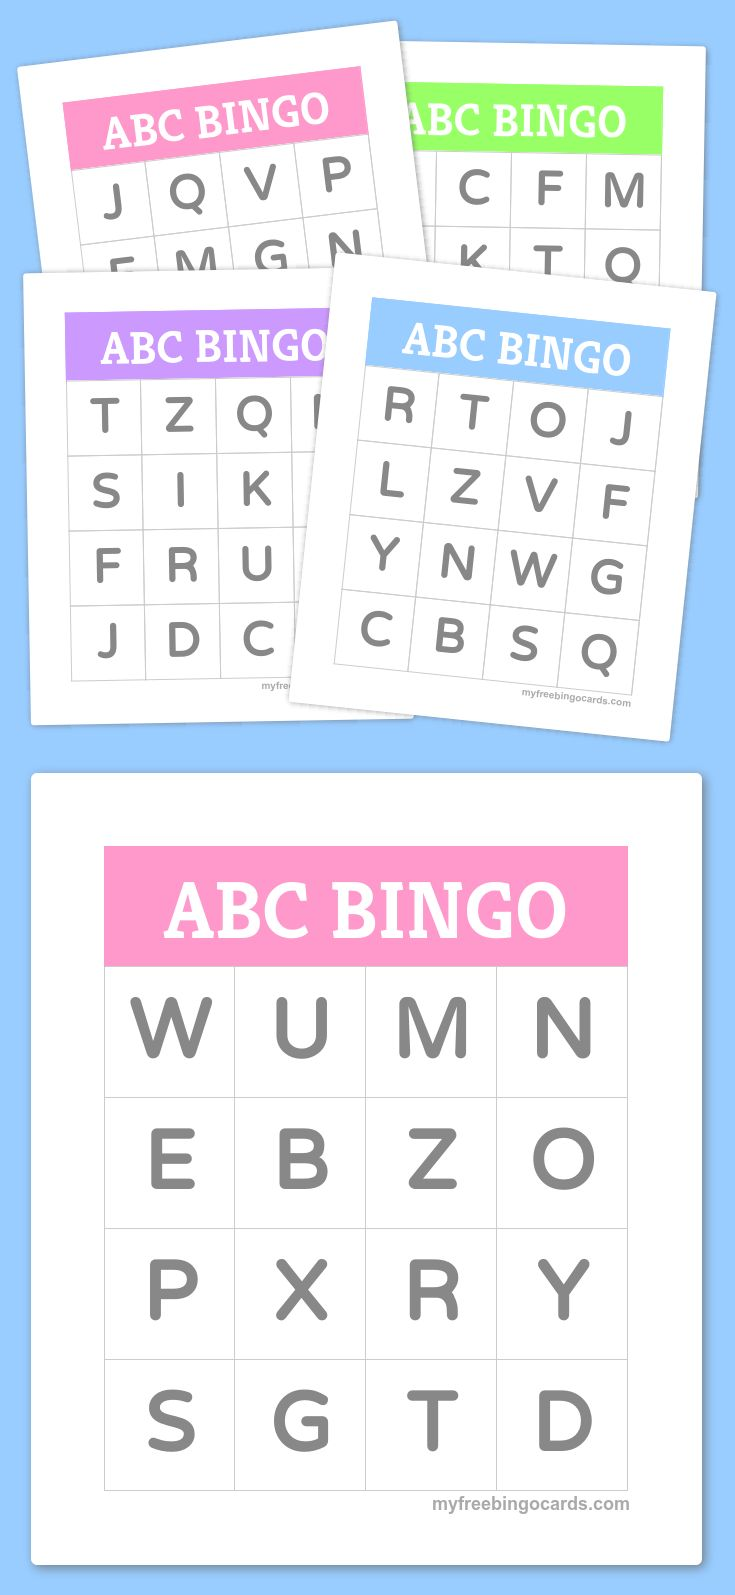 worksheet Bingo Worksheet 1000 ideas about bingo cards on pinterest party abc alphabet upper case ready for you to print right away free a great teaching resource